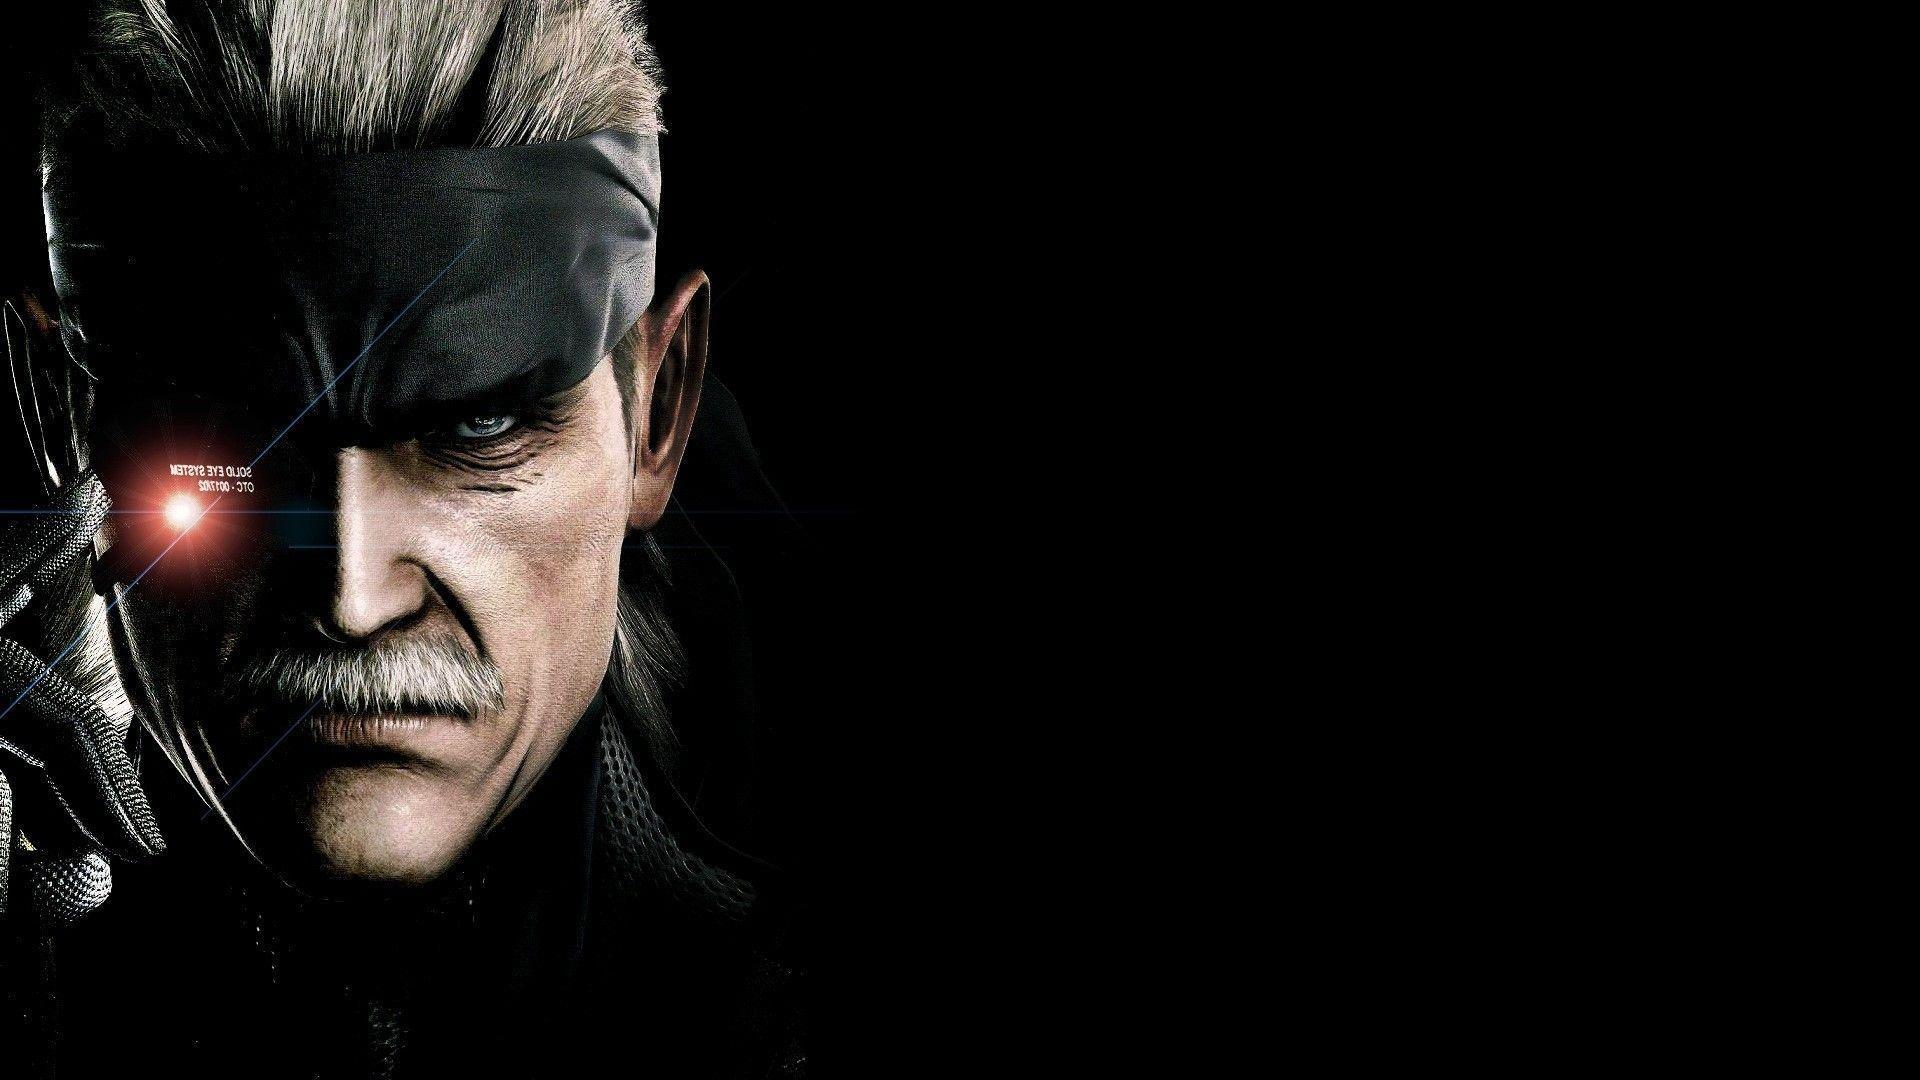 metal gear hd wallpapers - photo #13